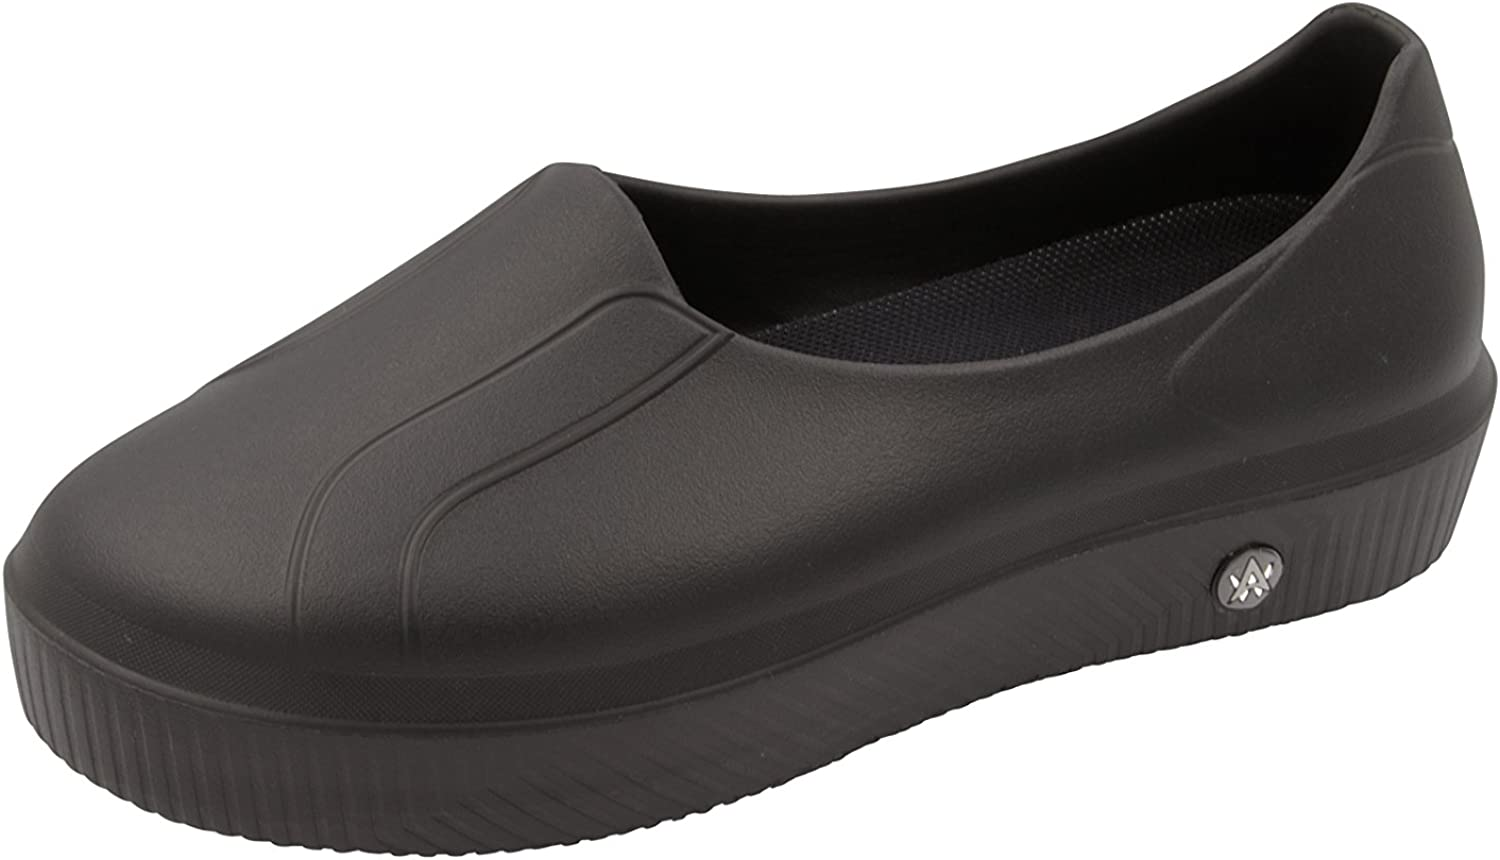 Anywear Women's Rise Health Care Professional shoes